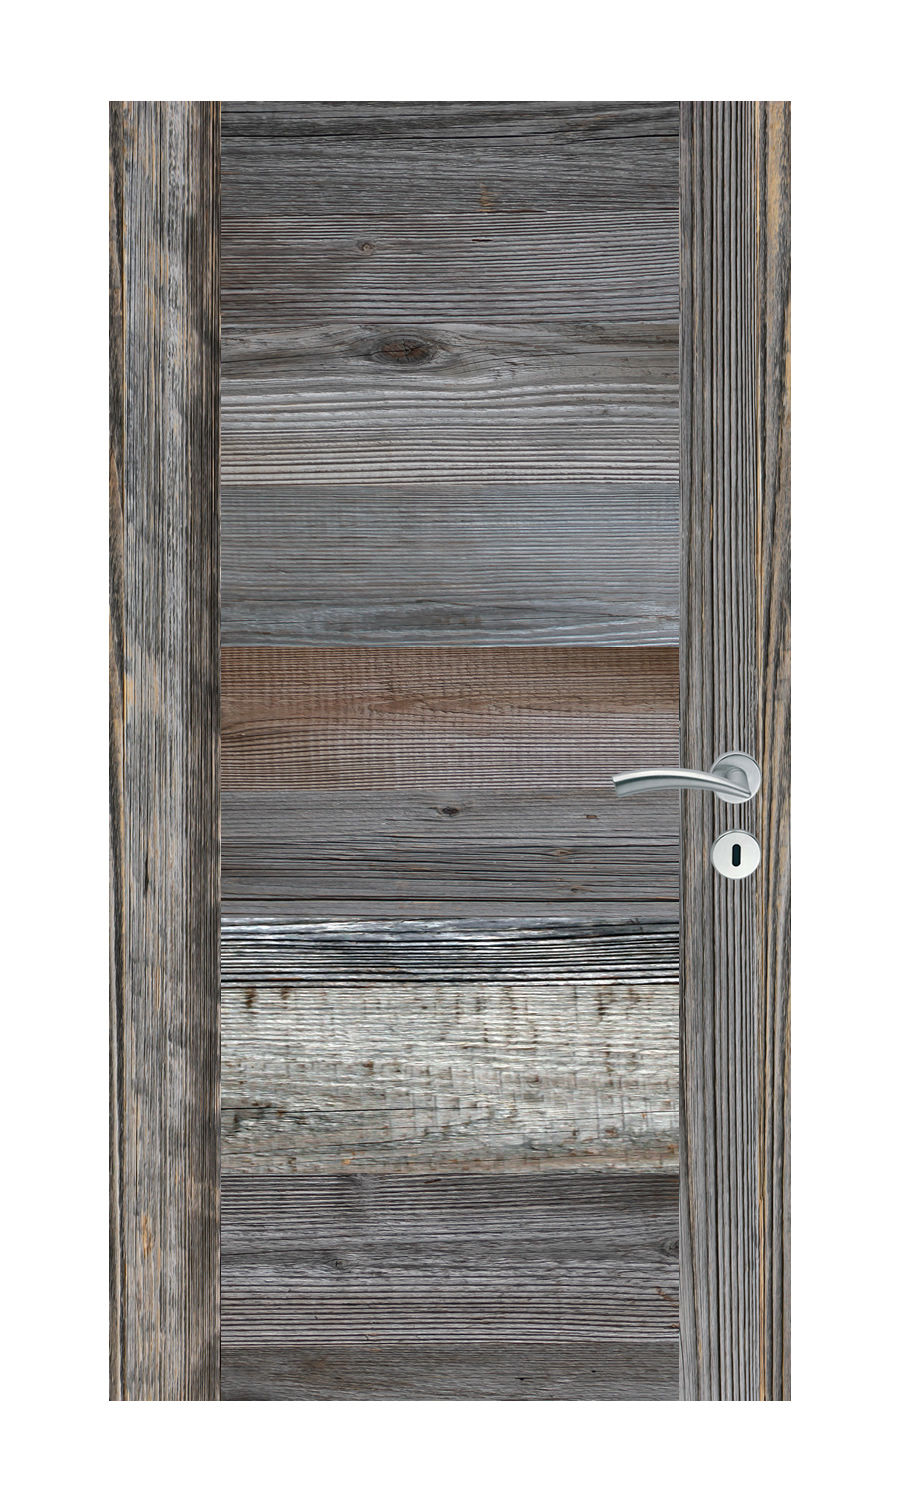 Reclaimed wood door interior and exterior grey reclaimed for Old wood doors salvaged